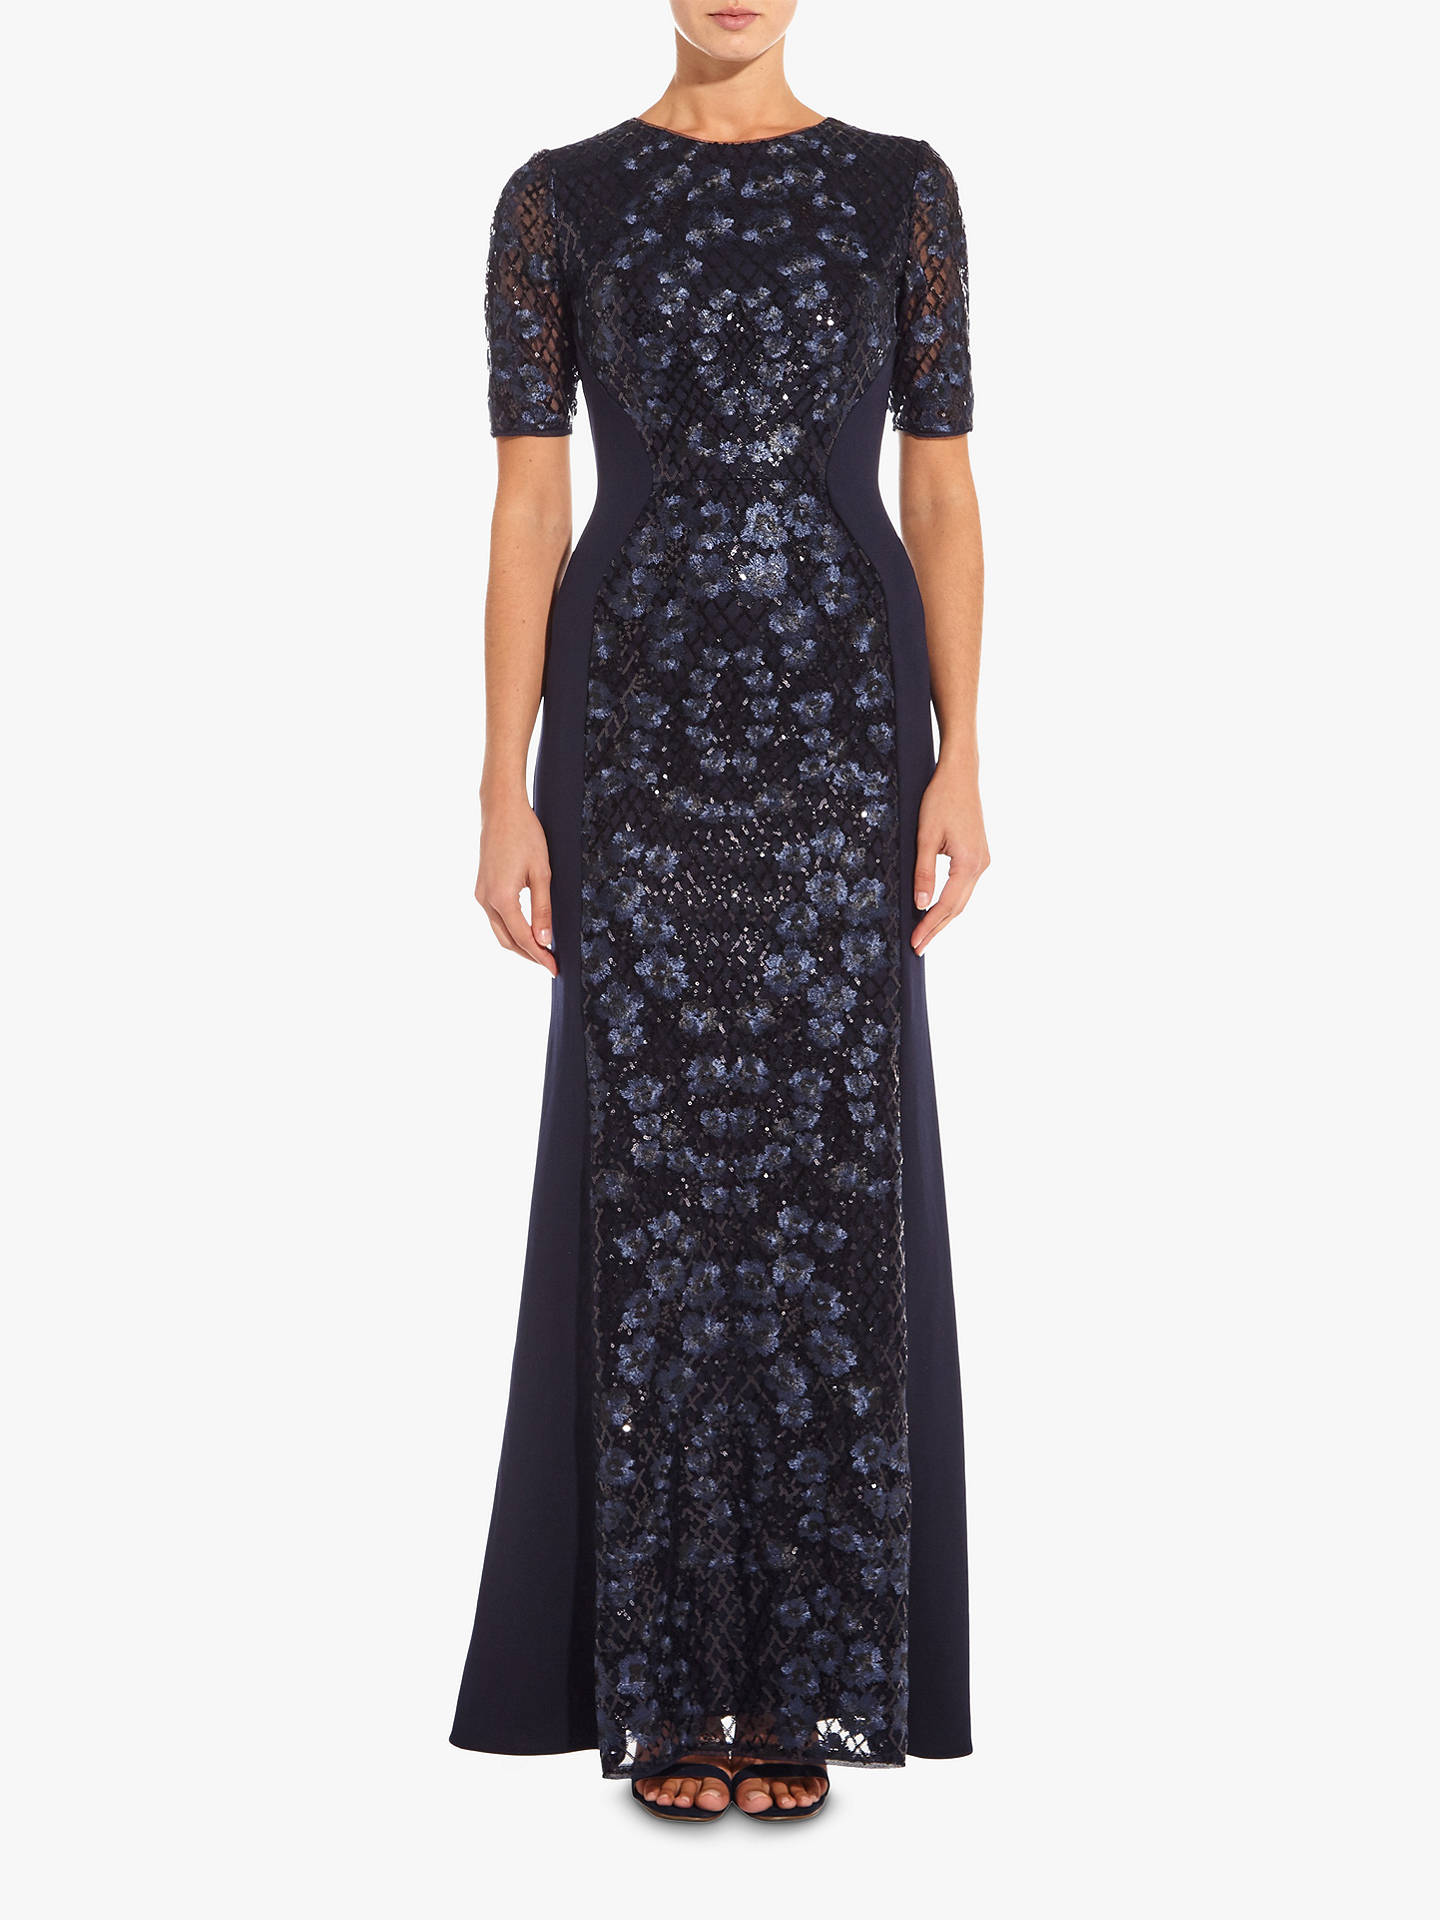 BuyAdrianna Papell Knit Sequin Maxi Dress, Midnight, 8 Online at johnlewis.com